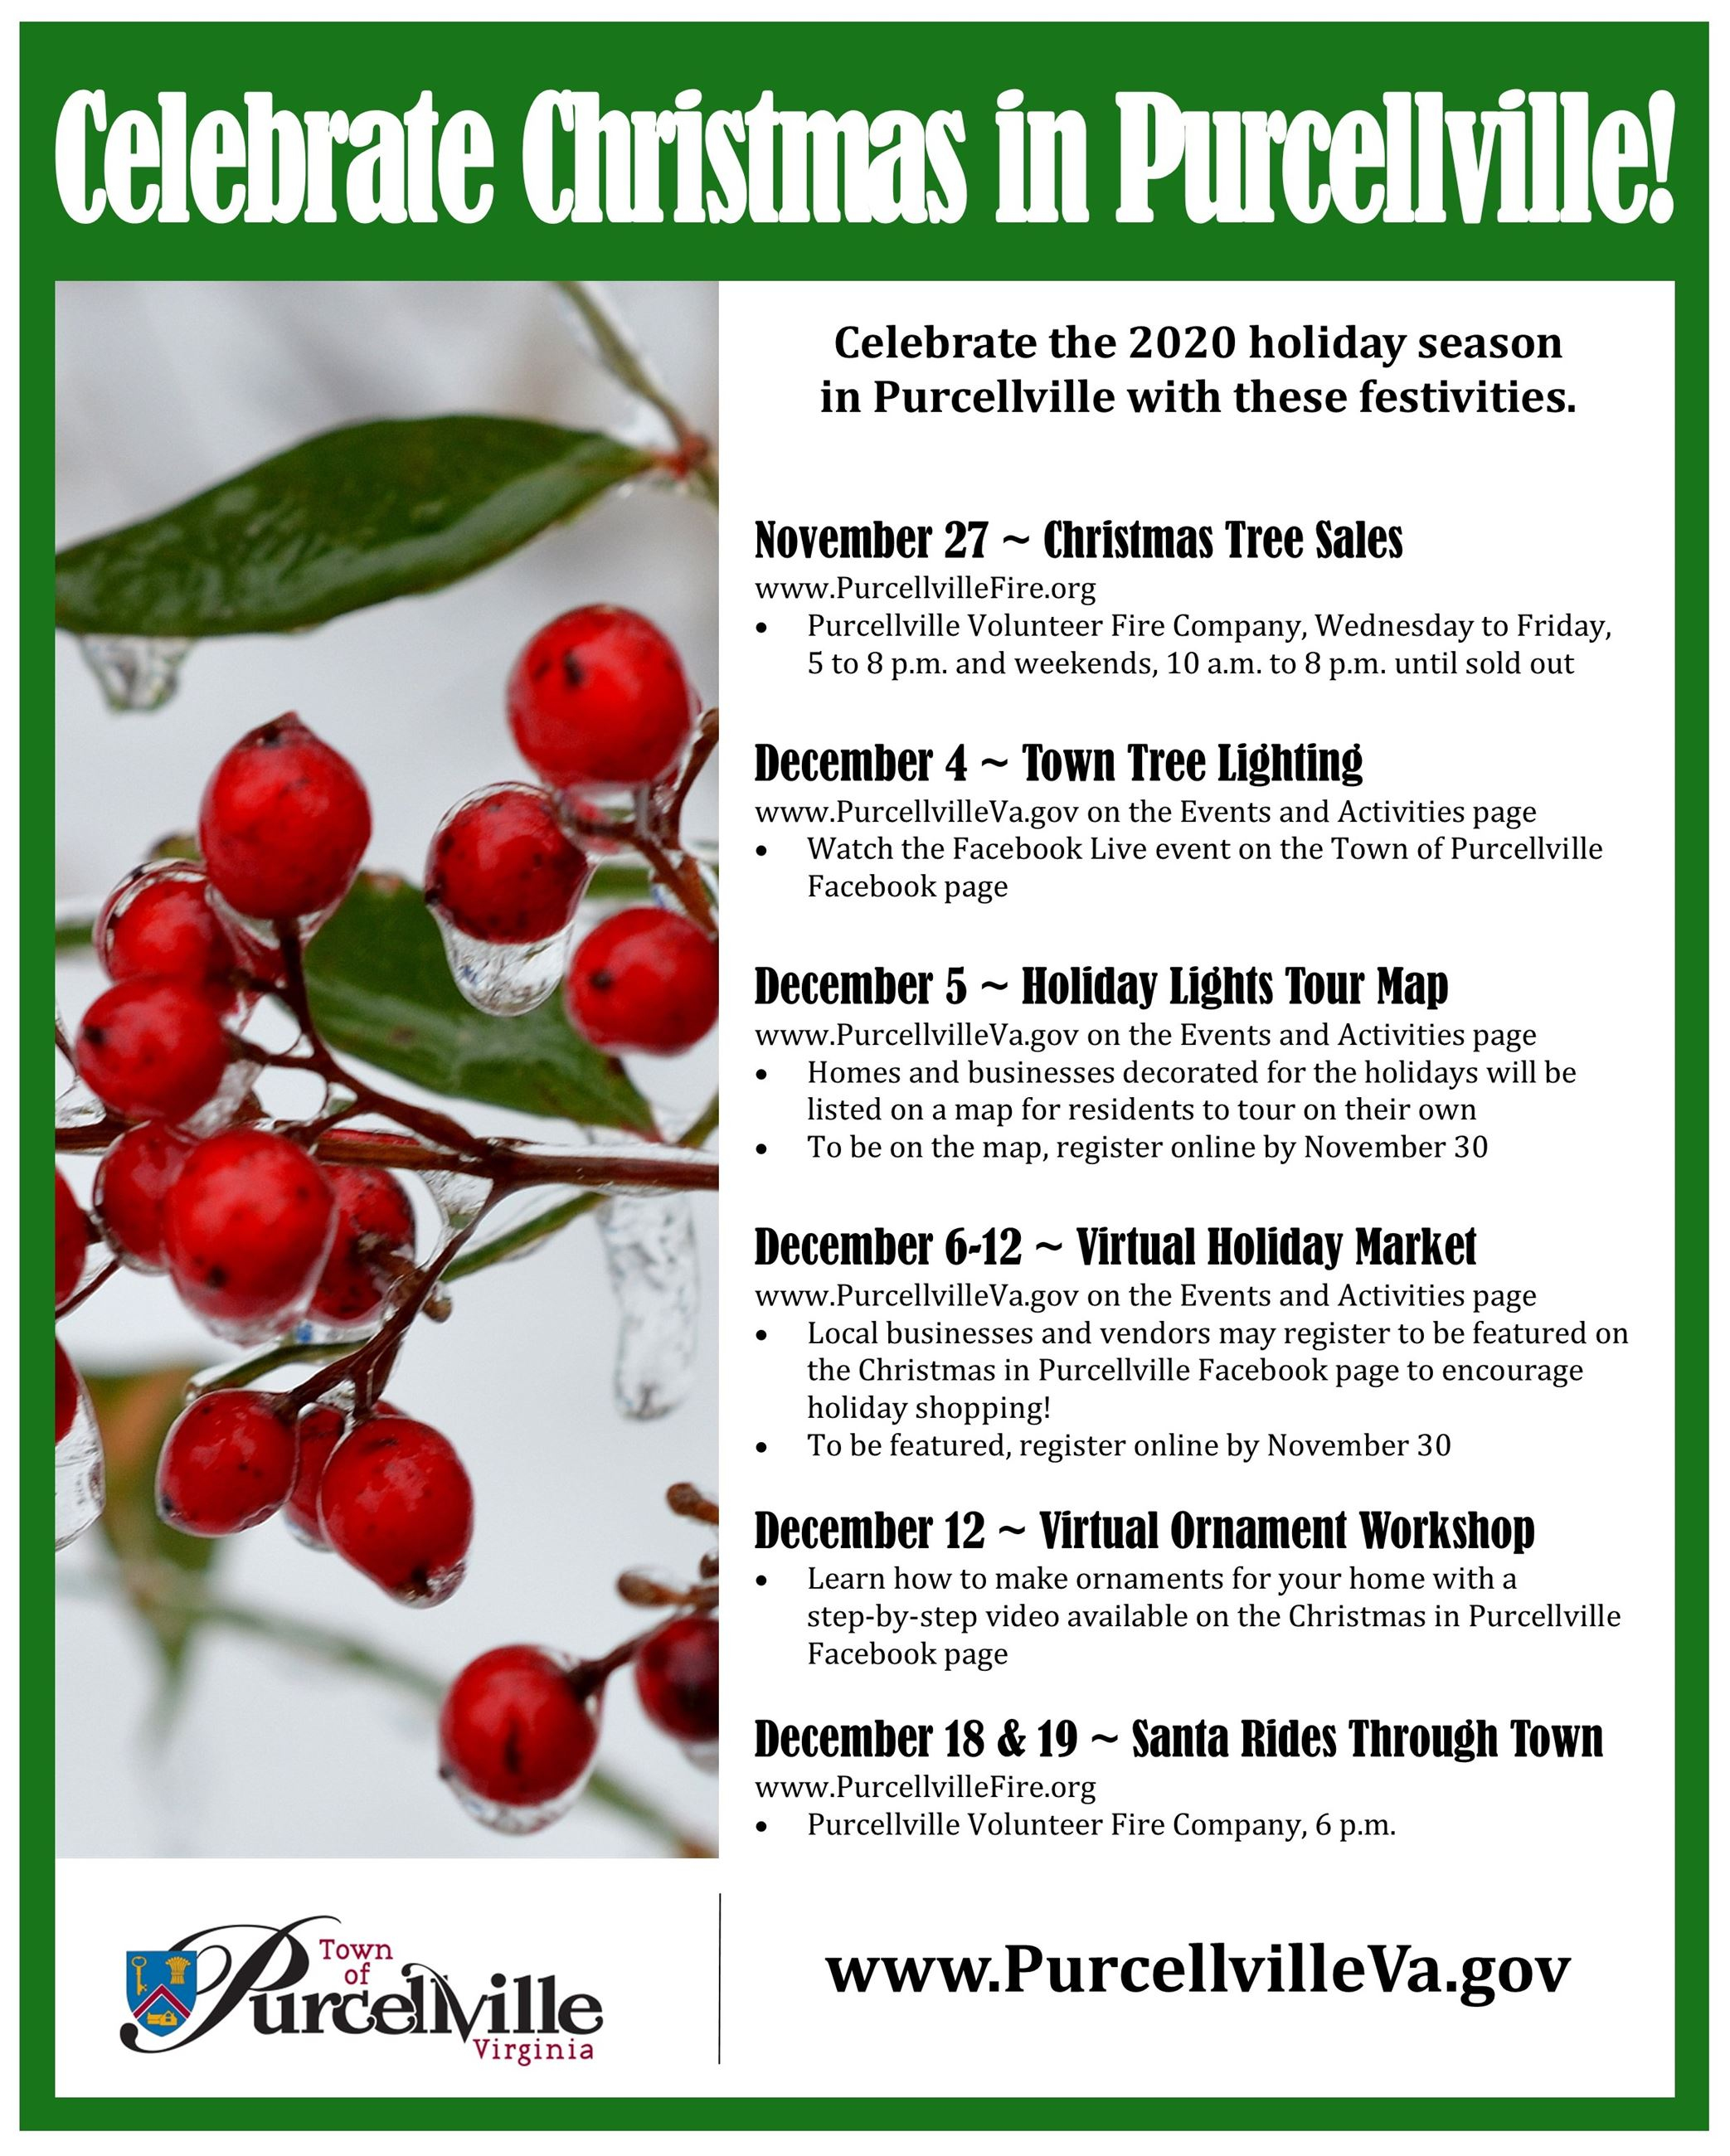 Christmas in Purcellville 2020 Flyer updated 12-1-20